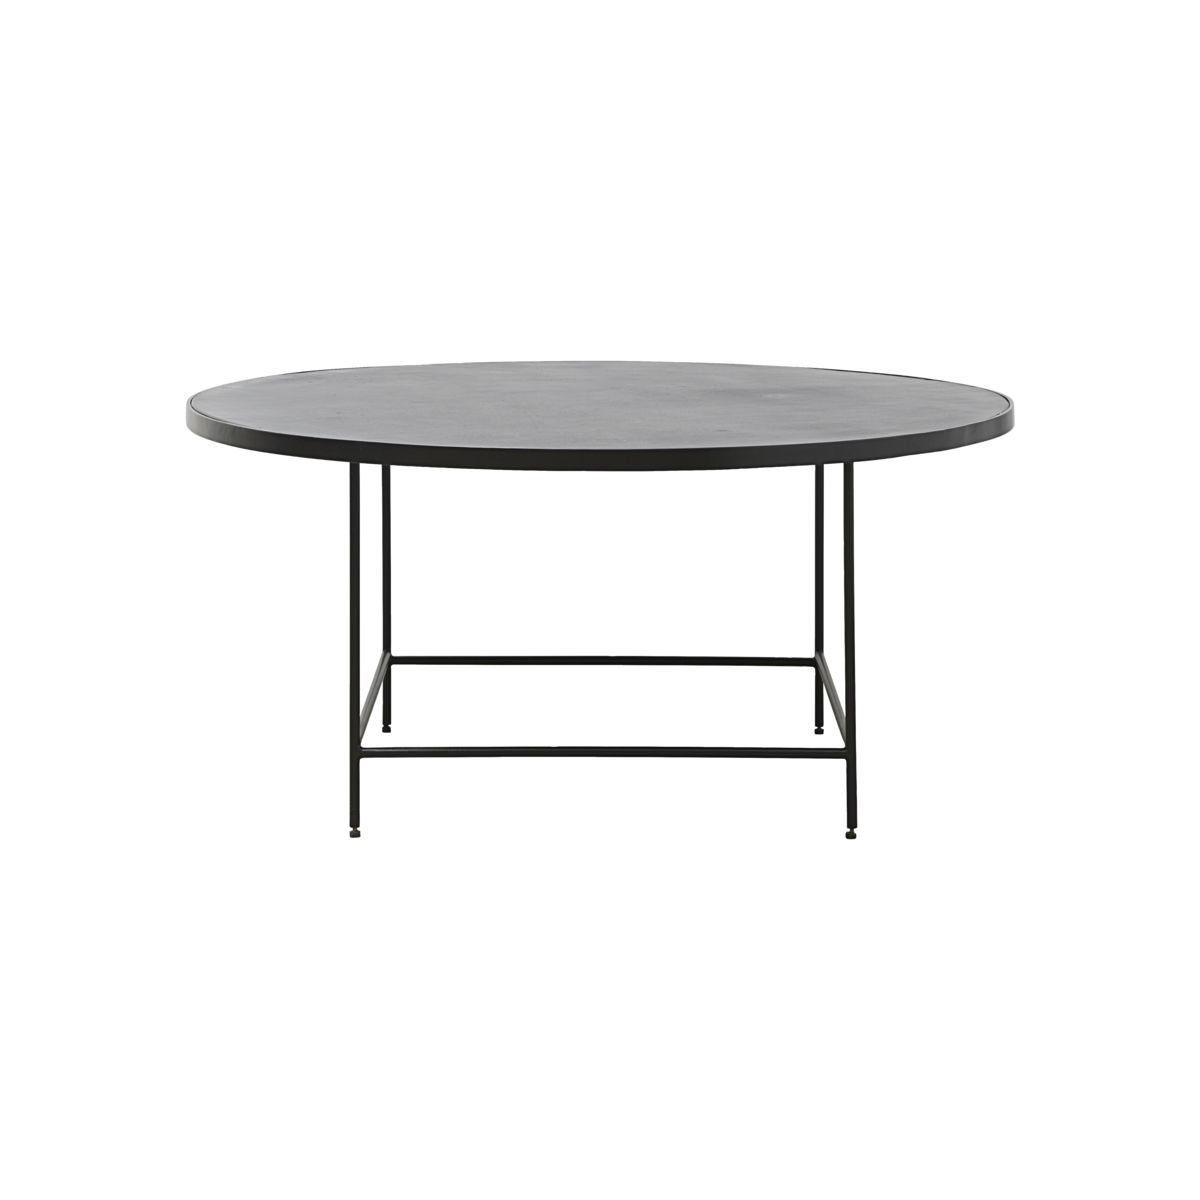 Image of   House Doctor Coffee table, Balance, dia: 100 cm, h: 45